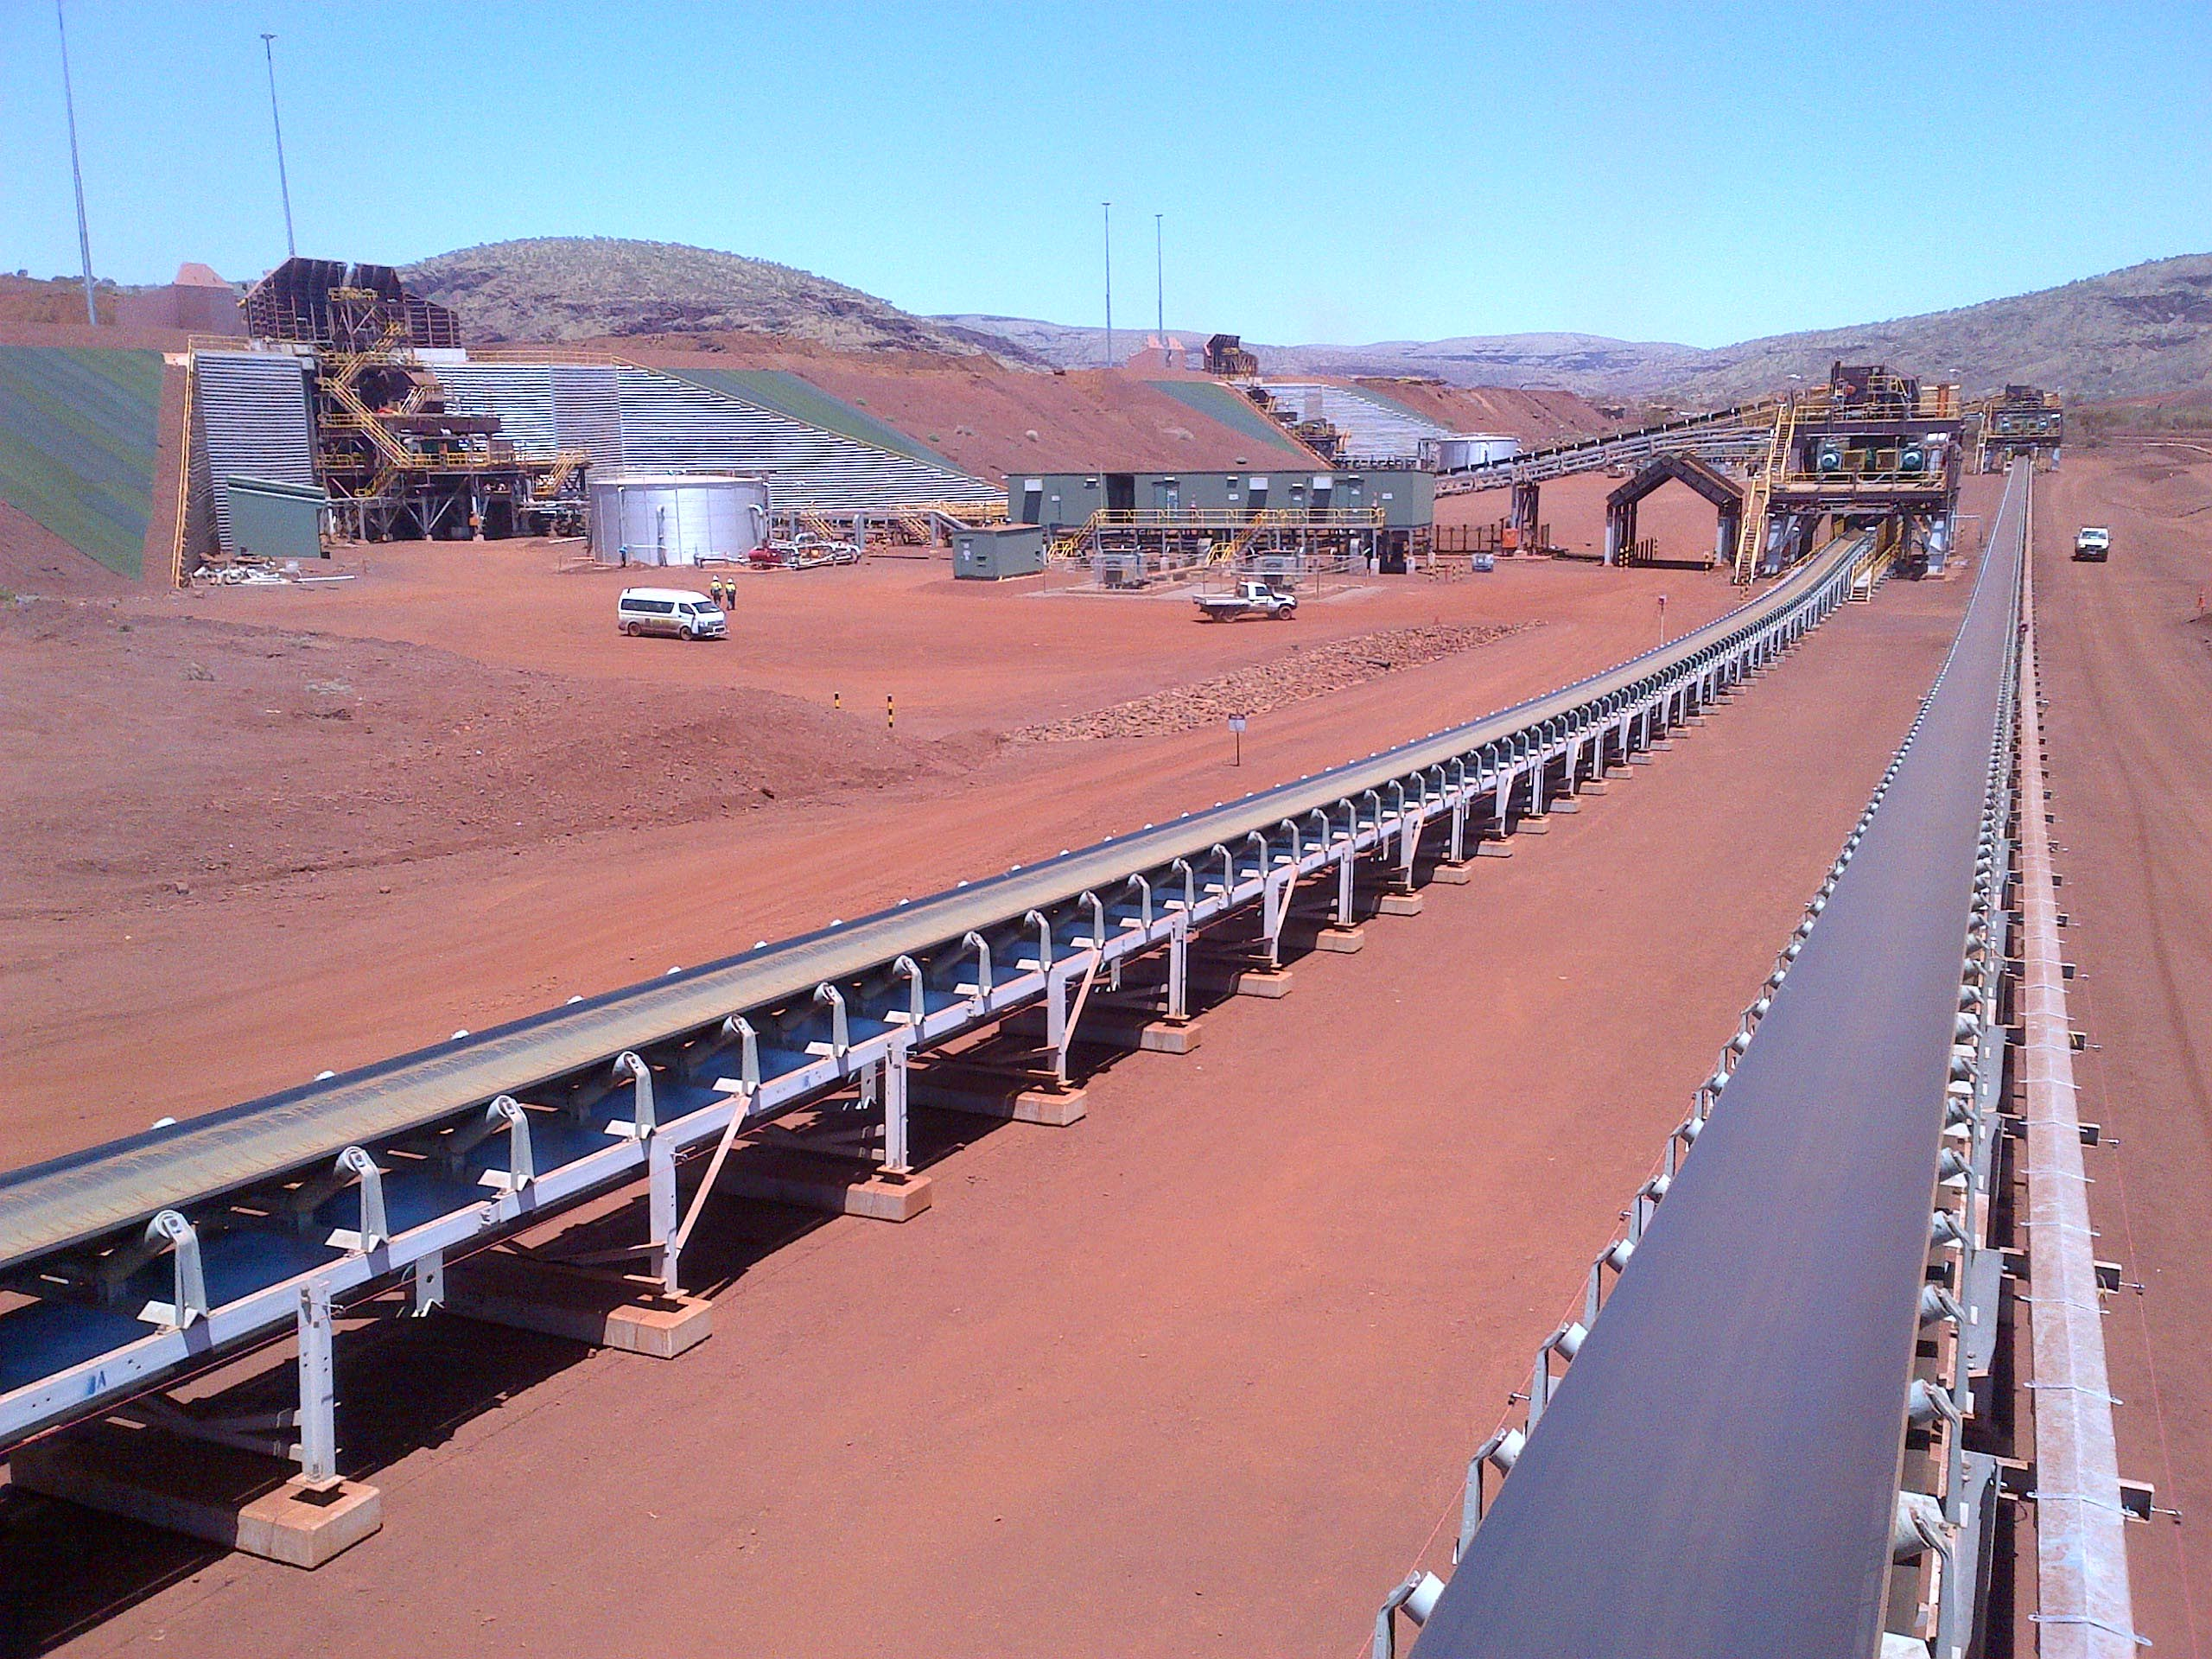 Solomon Kings Valley Overland Conveyors